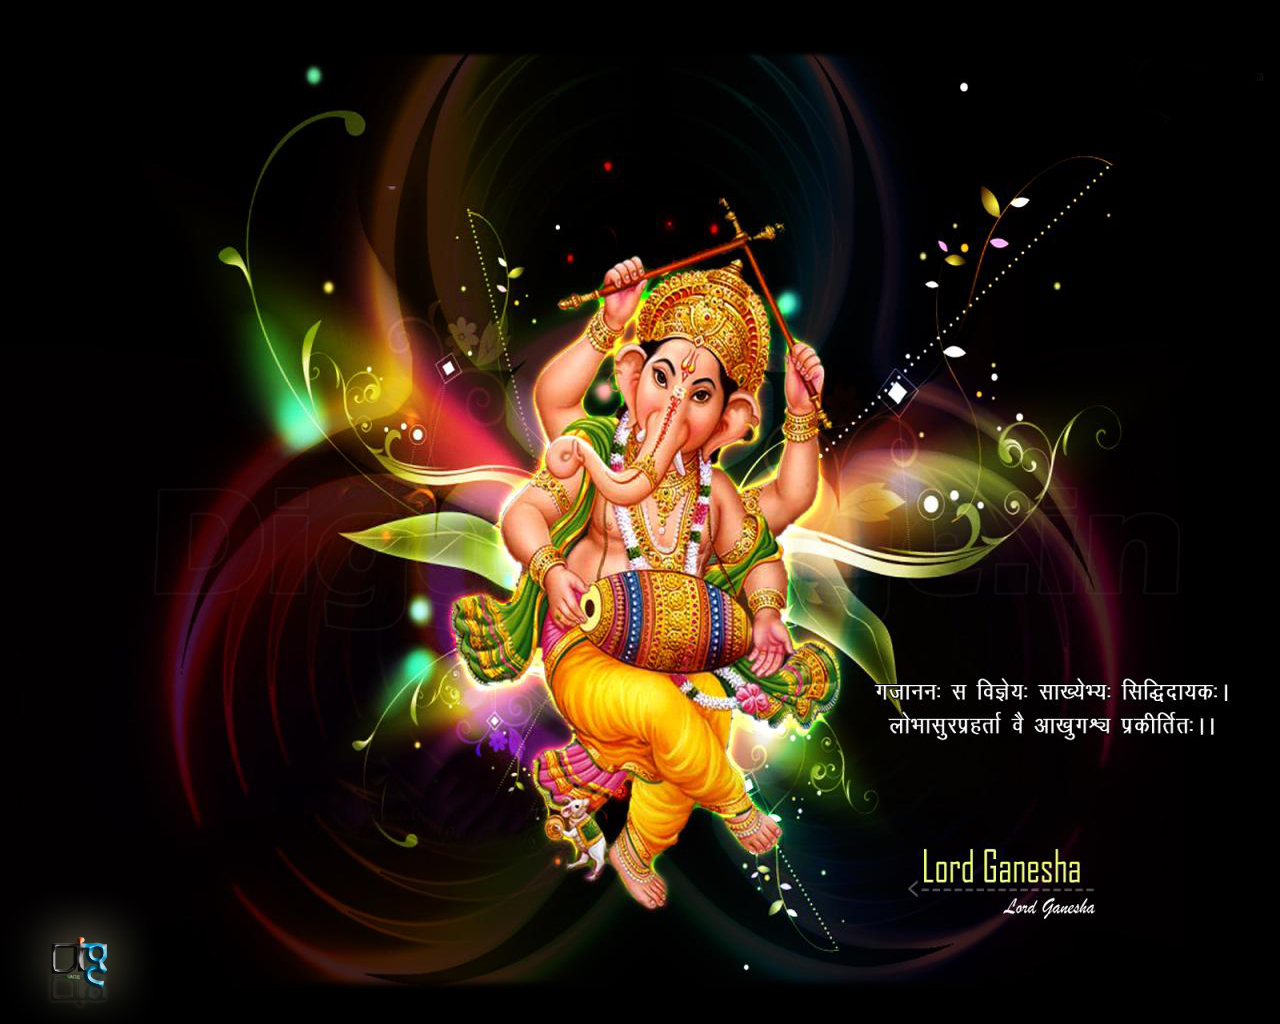 GaneshFestivalGreetingsinHindifreedownloadforpCwallpaperJPG. 1280 x 1024.Importance Of Festivals In India Essay In Hindi